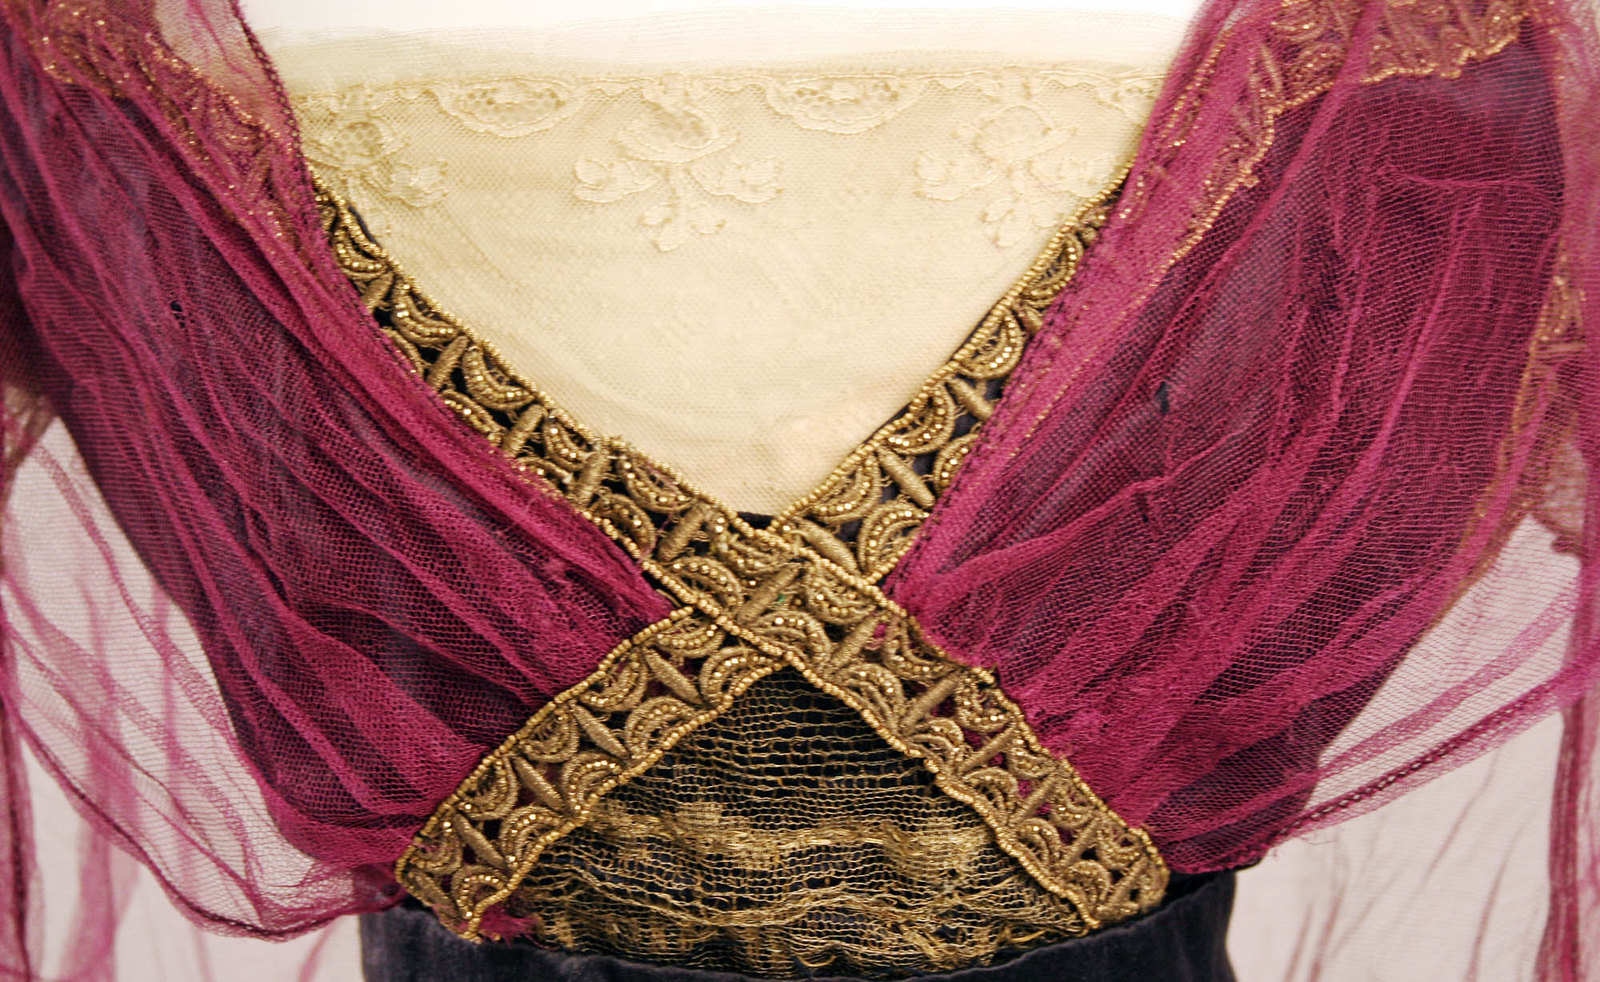 1911. Callot Soeurs. Silk, cotton, metallic thread, metal beads. metmuseum